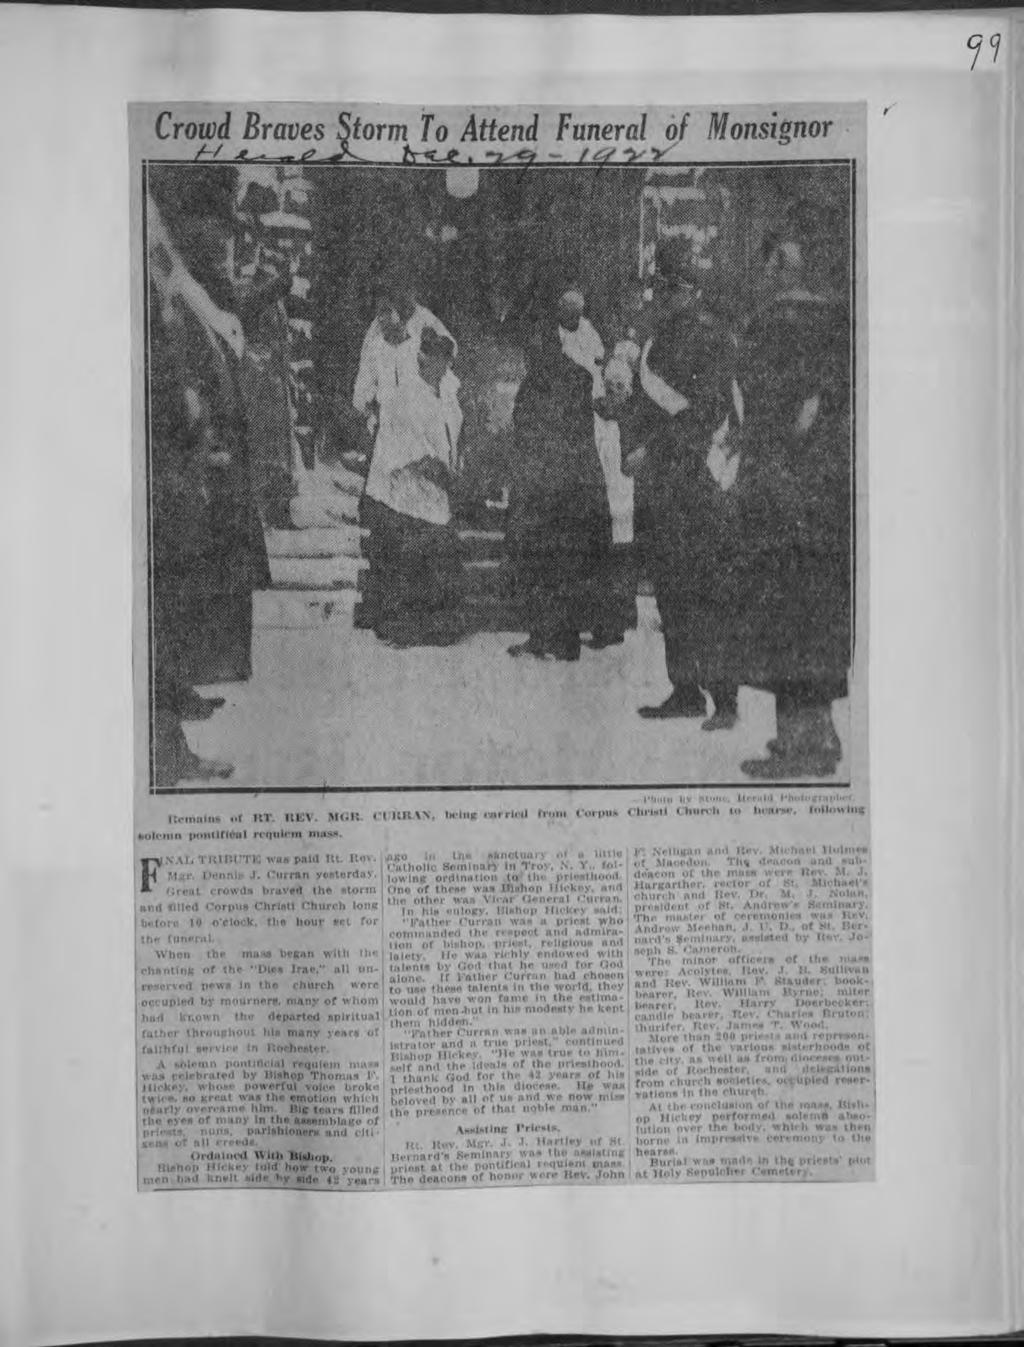 Central Lbrary of Rochester and Monroe County Hstorc Scrapbooks Collecton l Crowd Braves Storm to Attend Funeral of Monsgnor Remans <>r RT REV MGR < k: \\ beng carred o Corpus PllUlO < n -H < nn to h